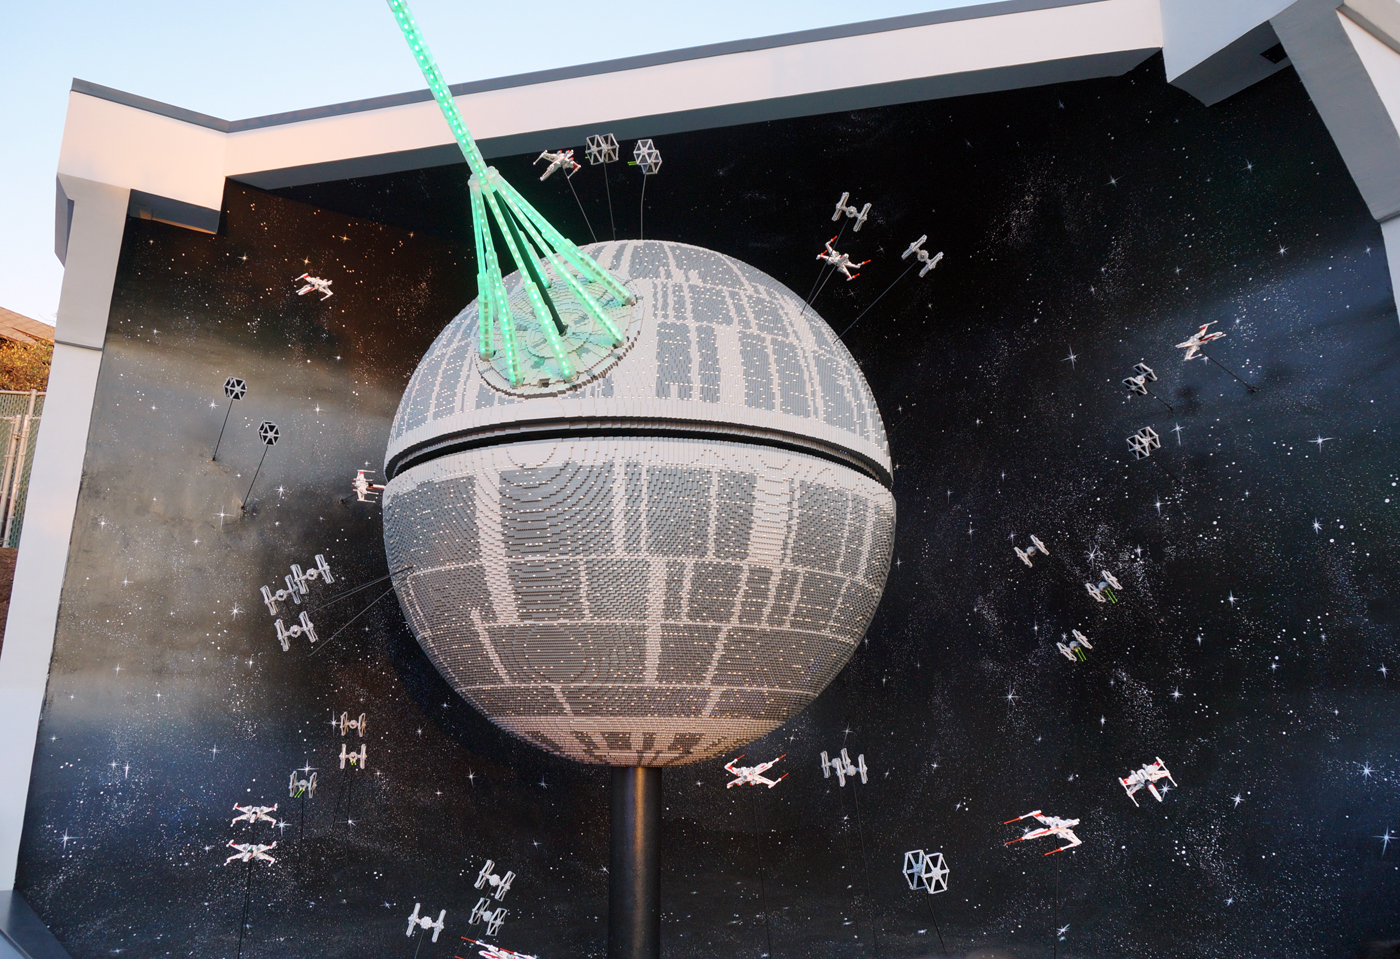 star wars lego death star unveiled at legoland california. Black Bedroom Furniture Sets. Home Design Ideas